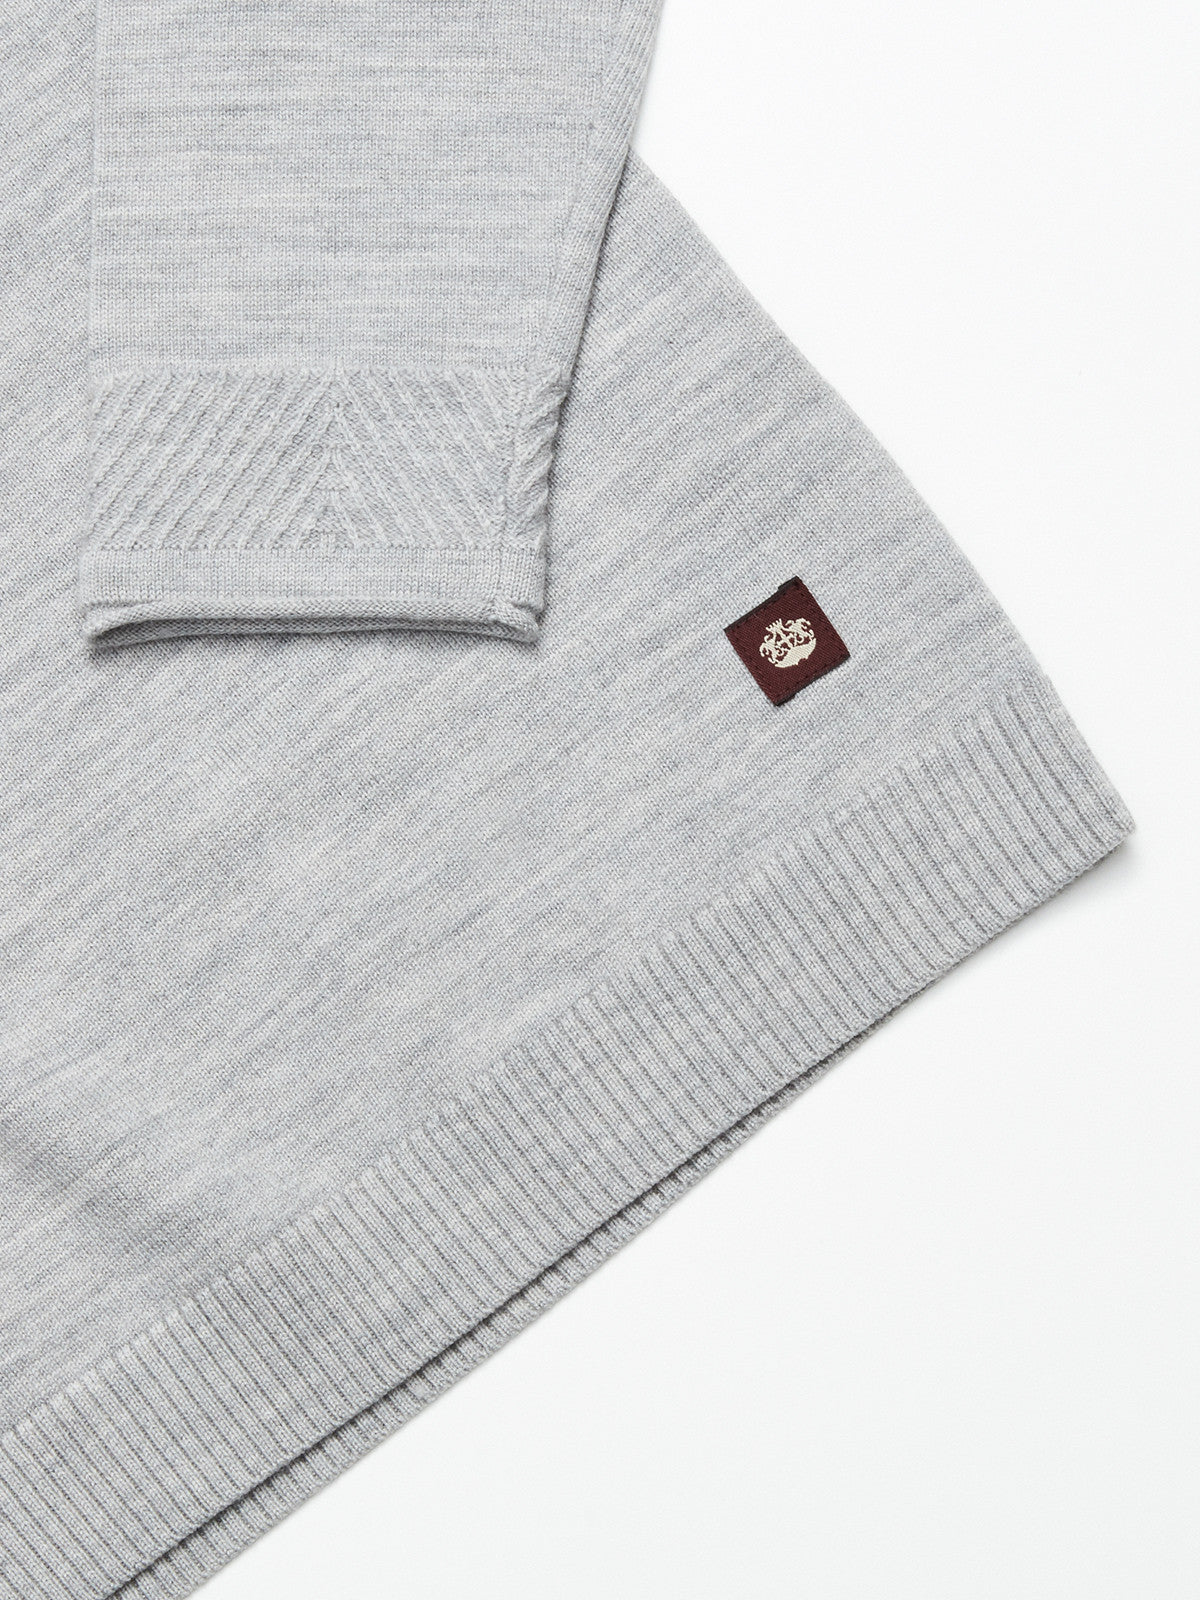 Montecello Knit, Grey Melange